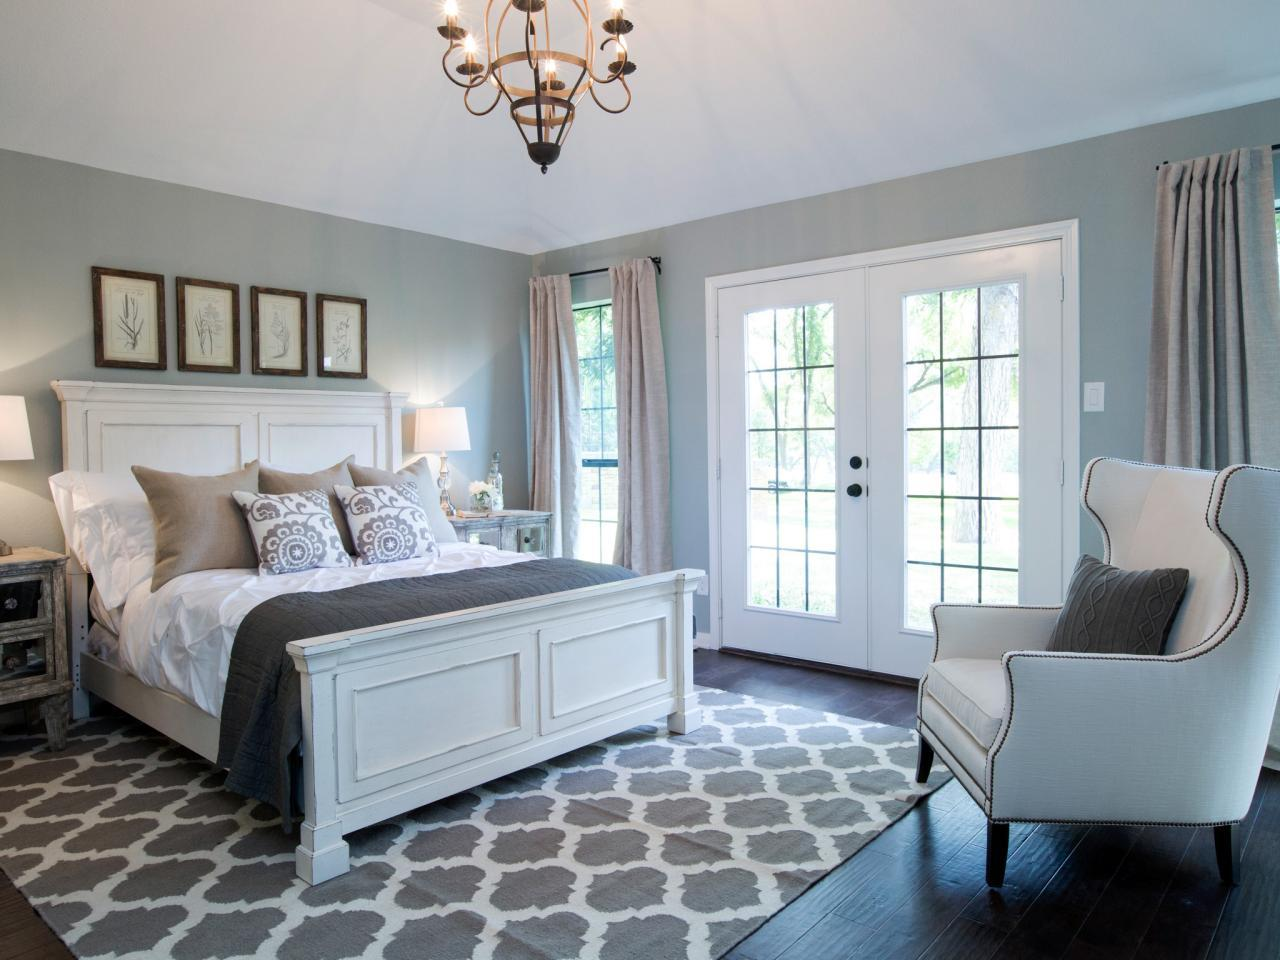 ordinary-best-master-bedroom-colors-2-fixer-upper-hgtv-bedroom-colors-1280-x-960